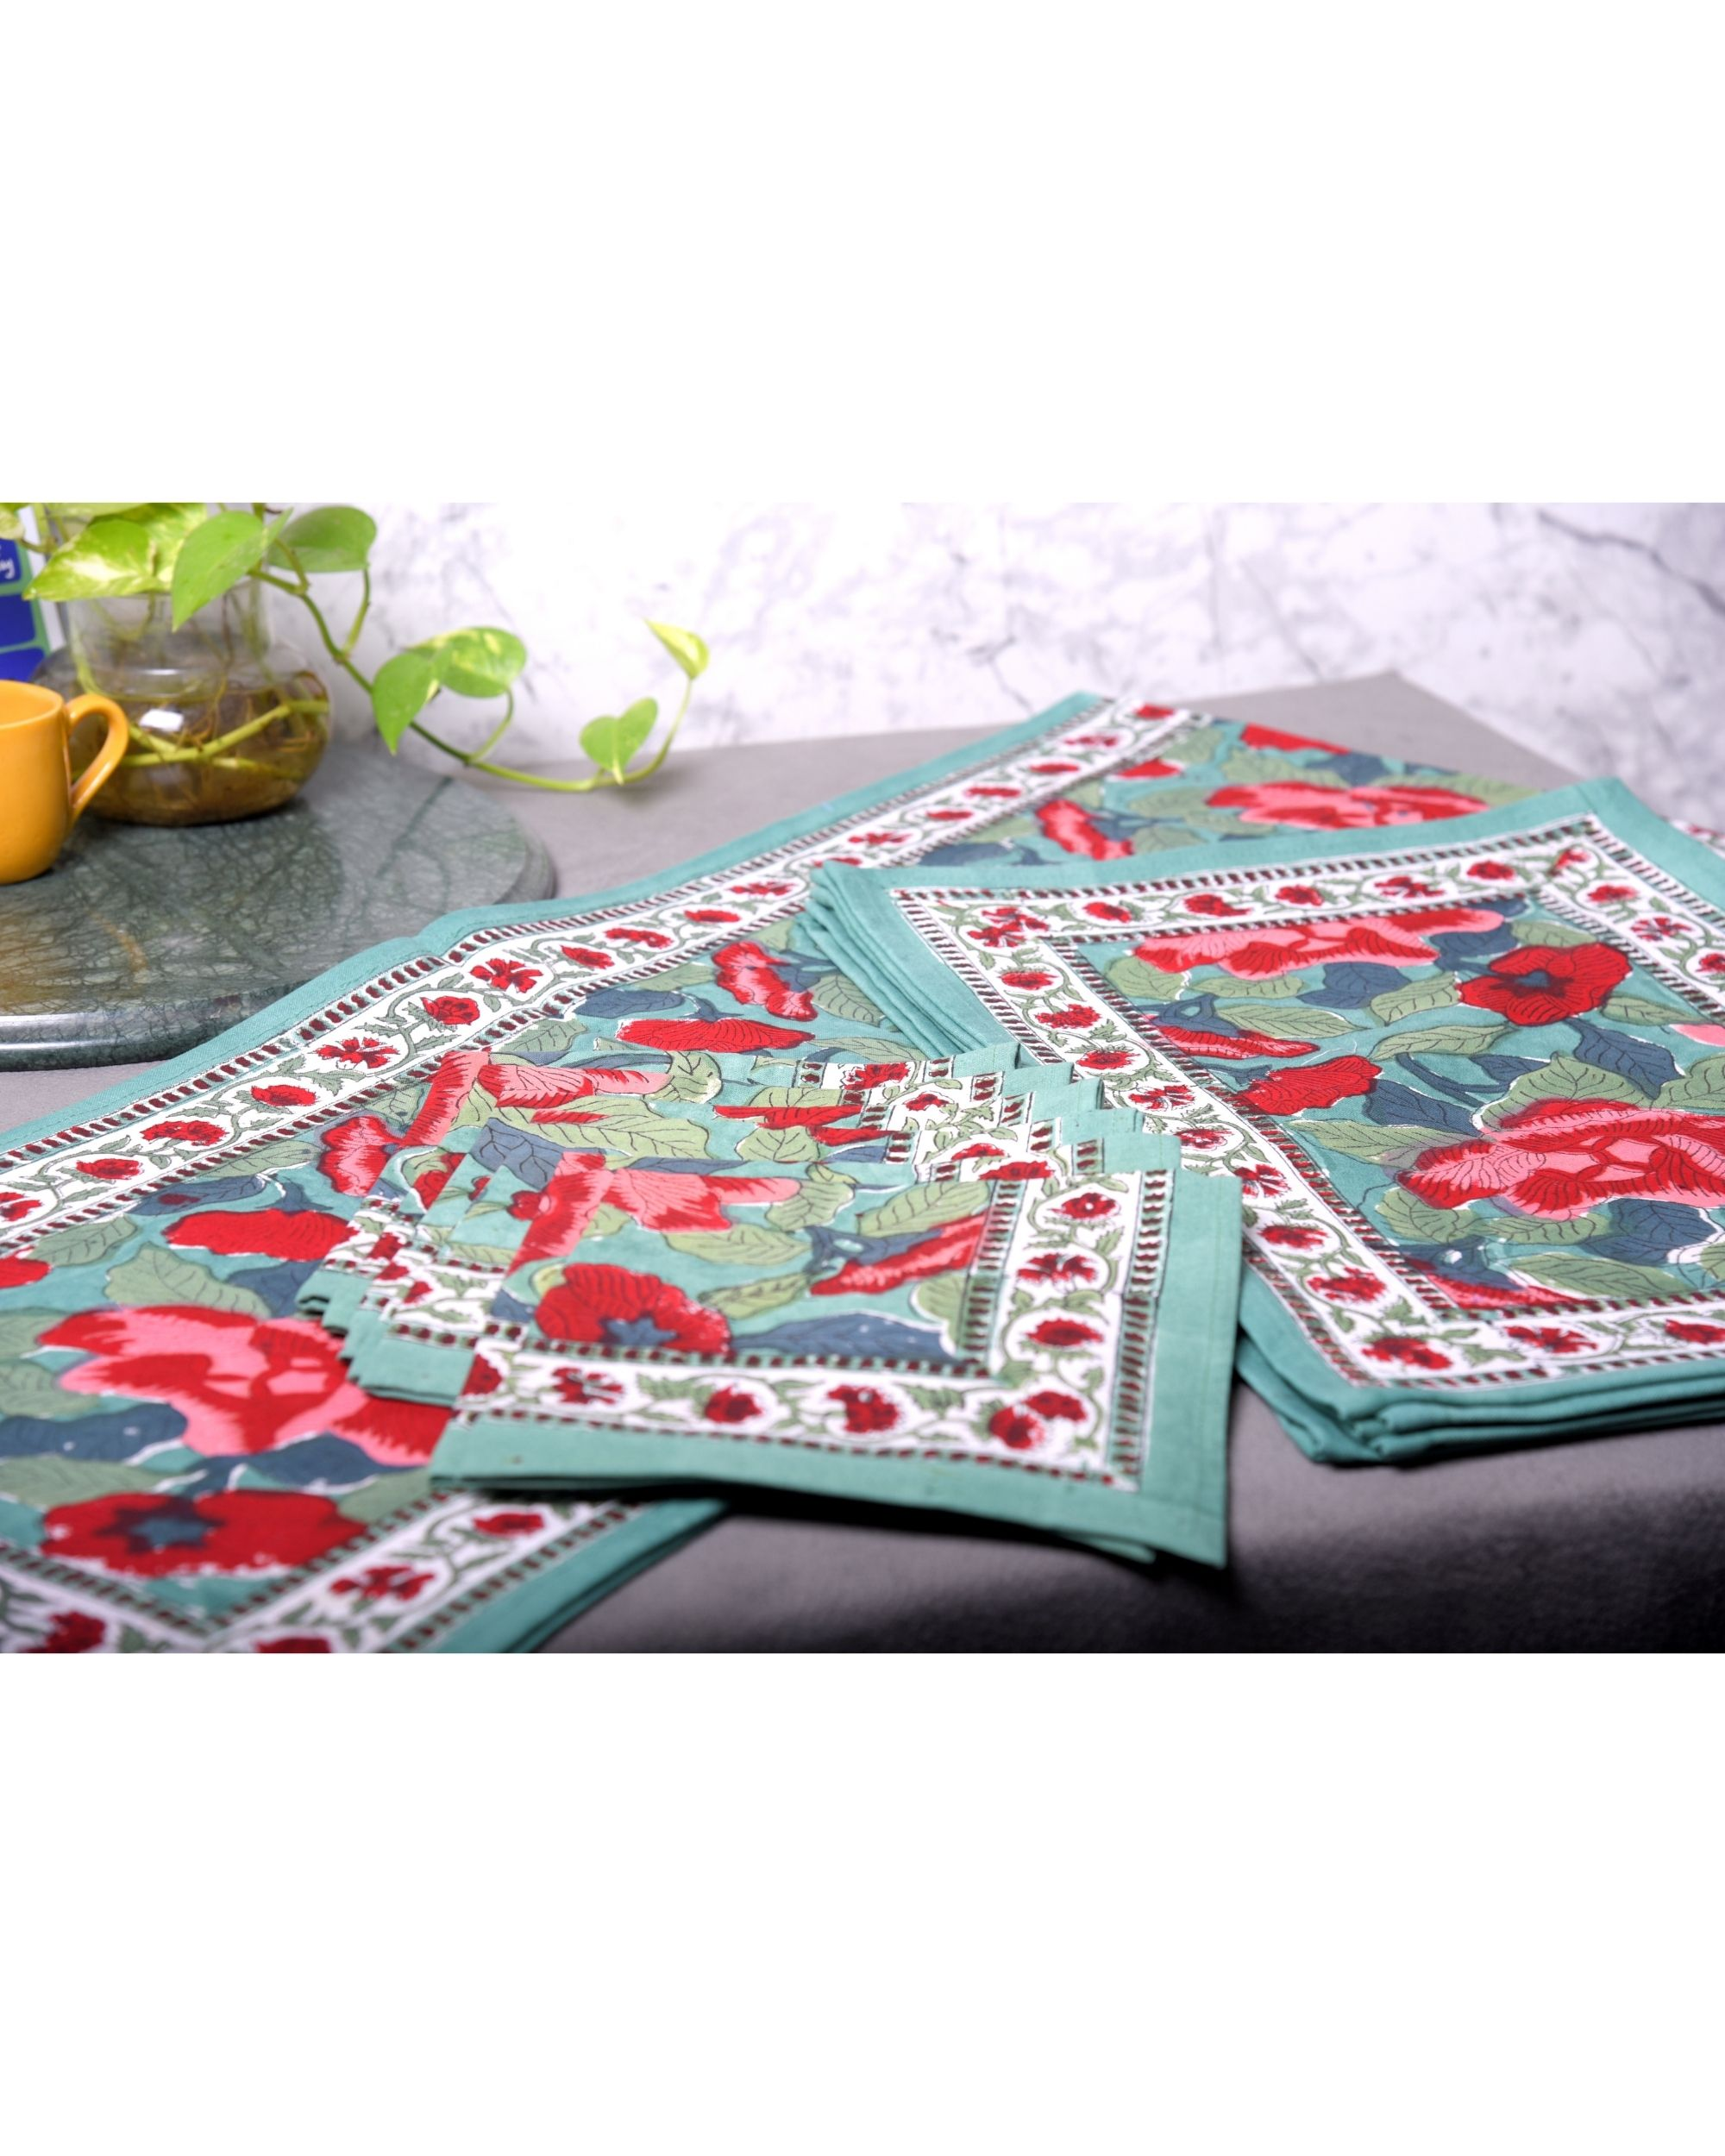 Red and green floral table runner, table mats and napkins - set of 13